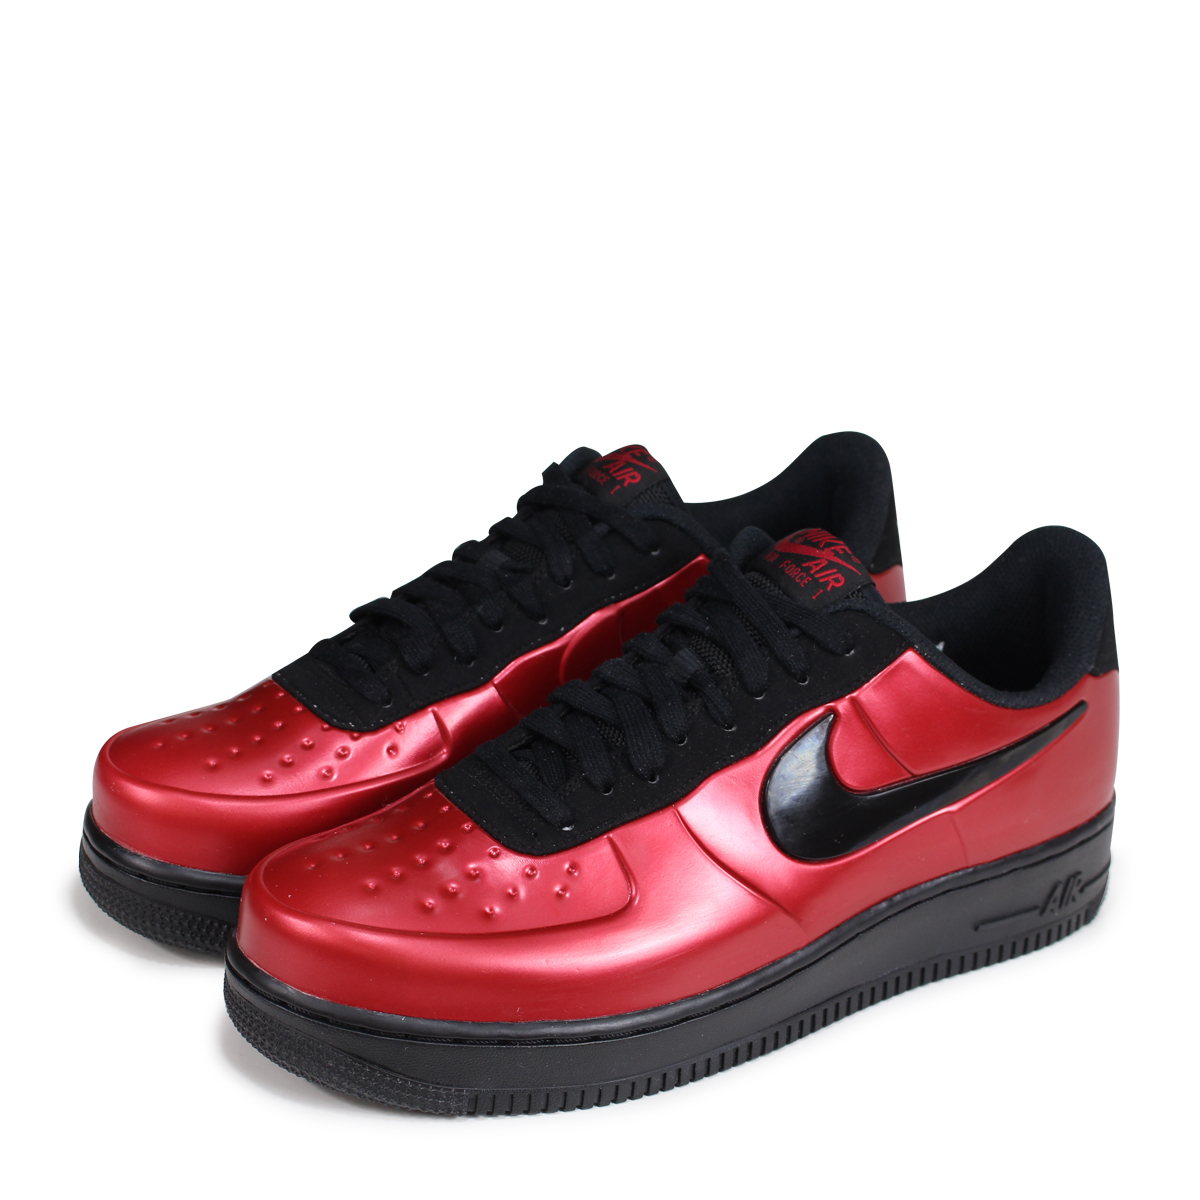 new style 47b2b e2783 NIKE AIR FORCE 1 FOAMPOSITE PRO CUP AF1 Nike air force 1 sneakers men  AJ3664-601 red [load planned Shinnyu load in reservation product 7/19 ...